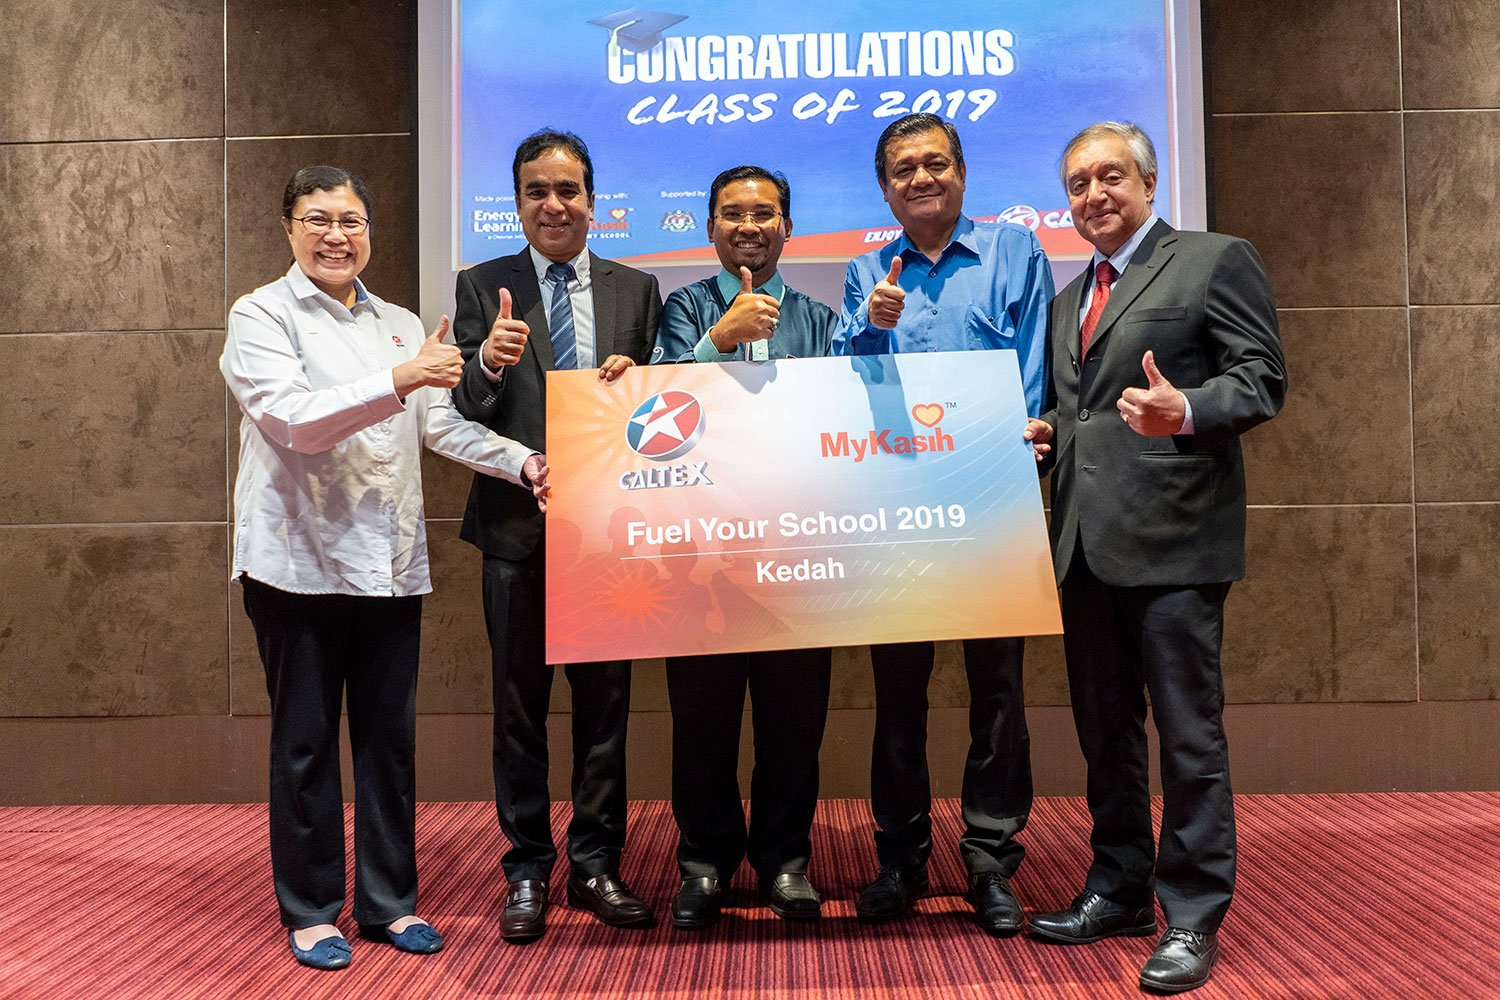 Caltex Fuel Your School returns to Kedah for the third time